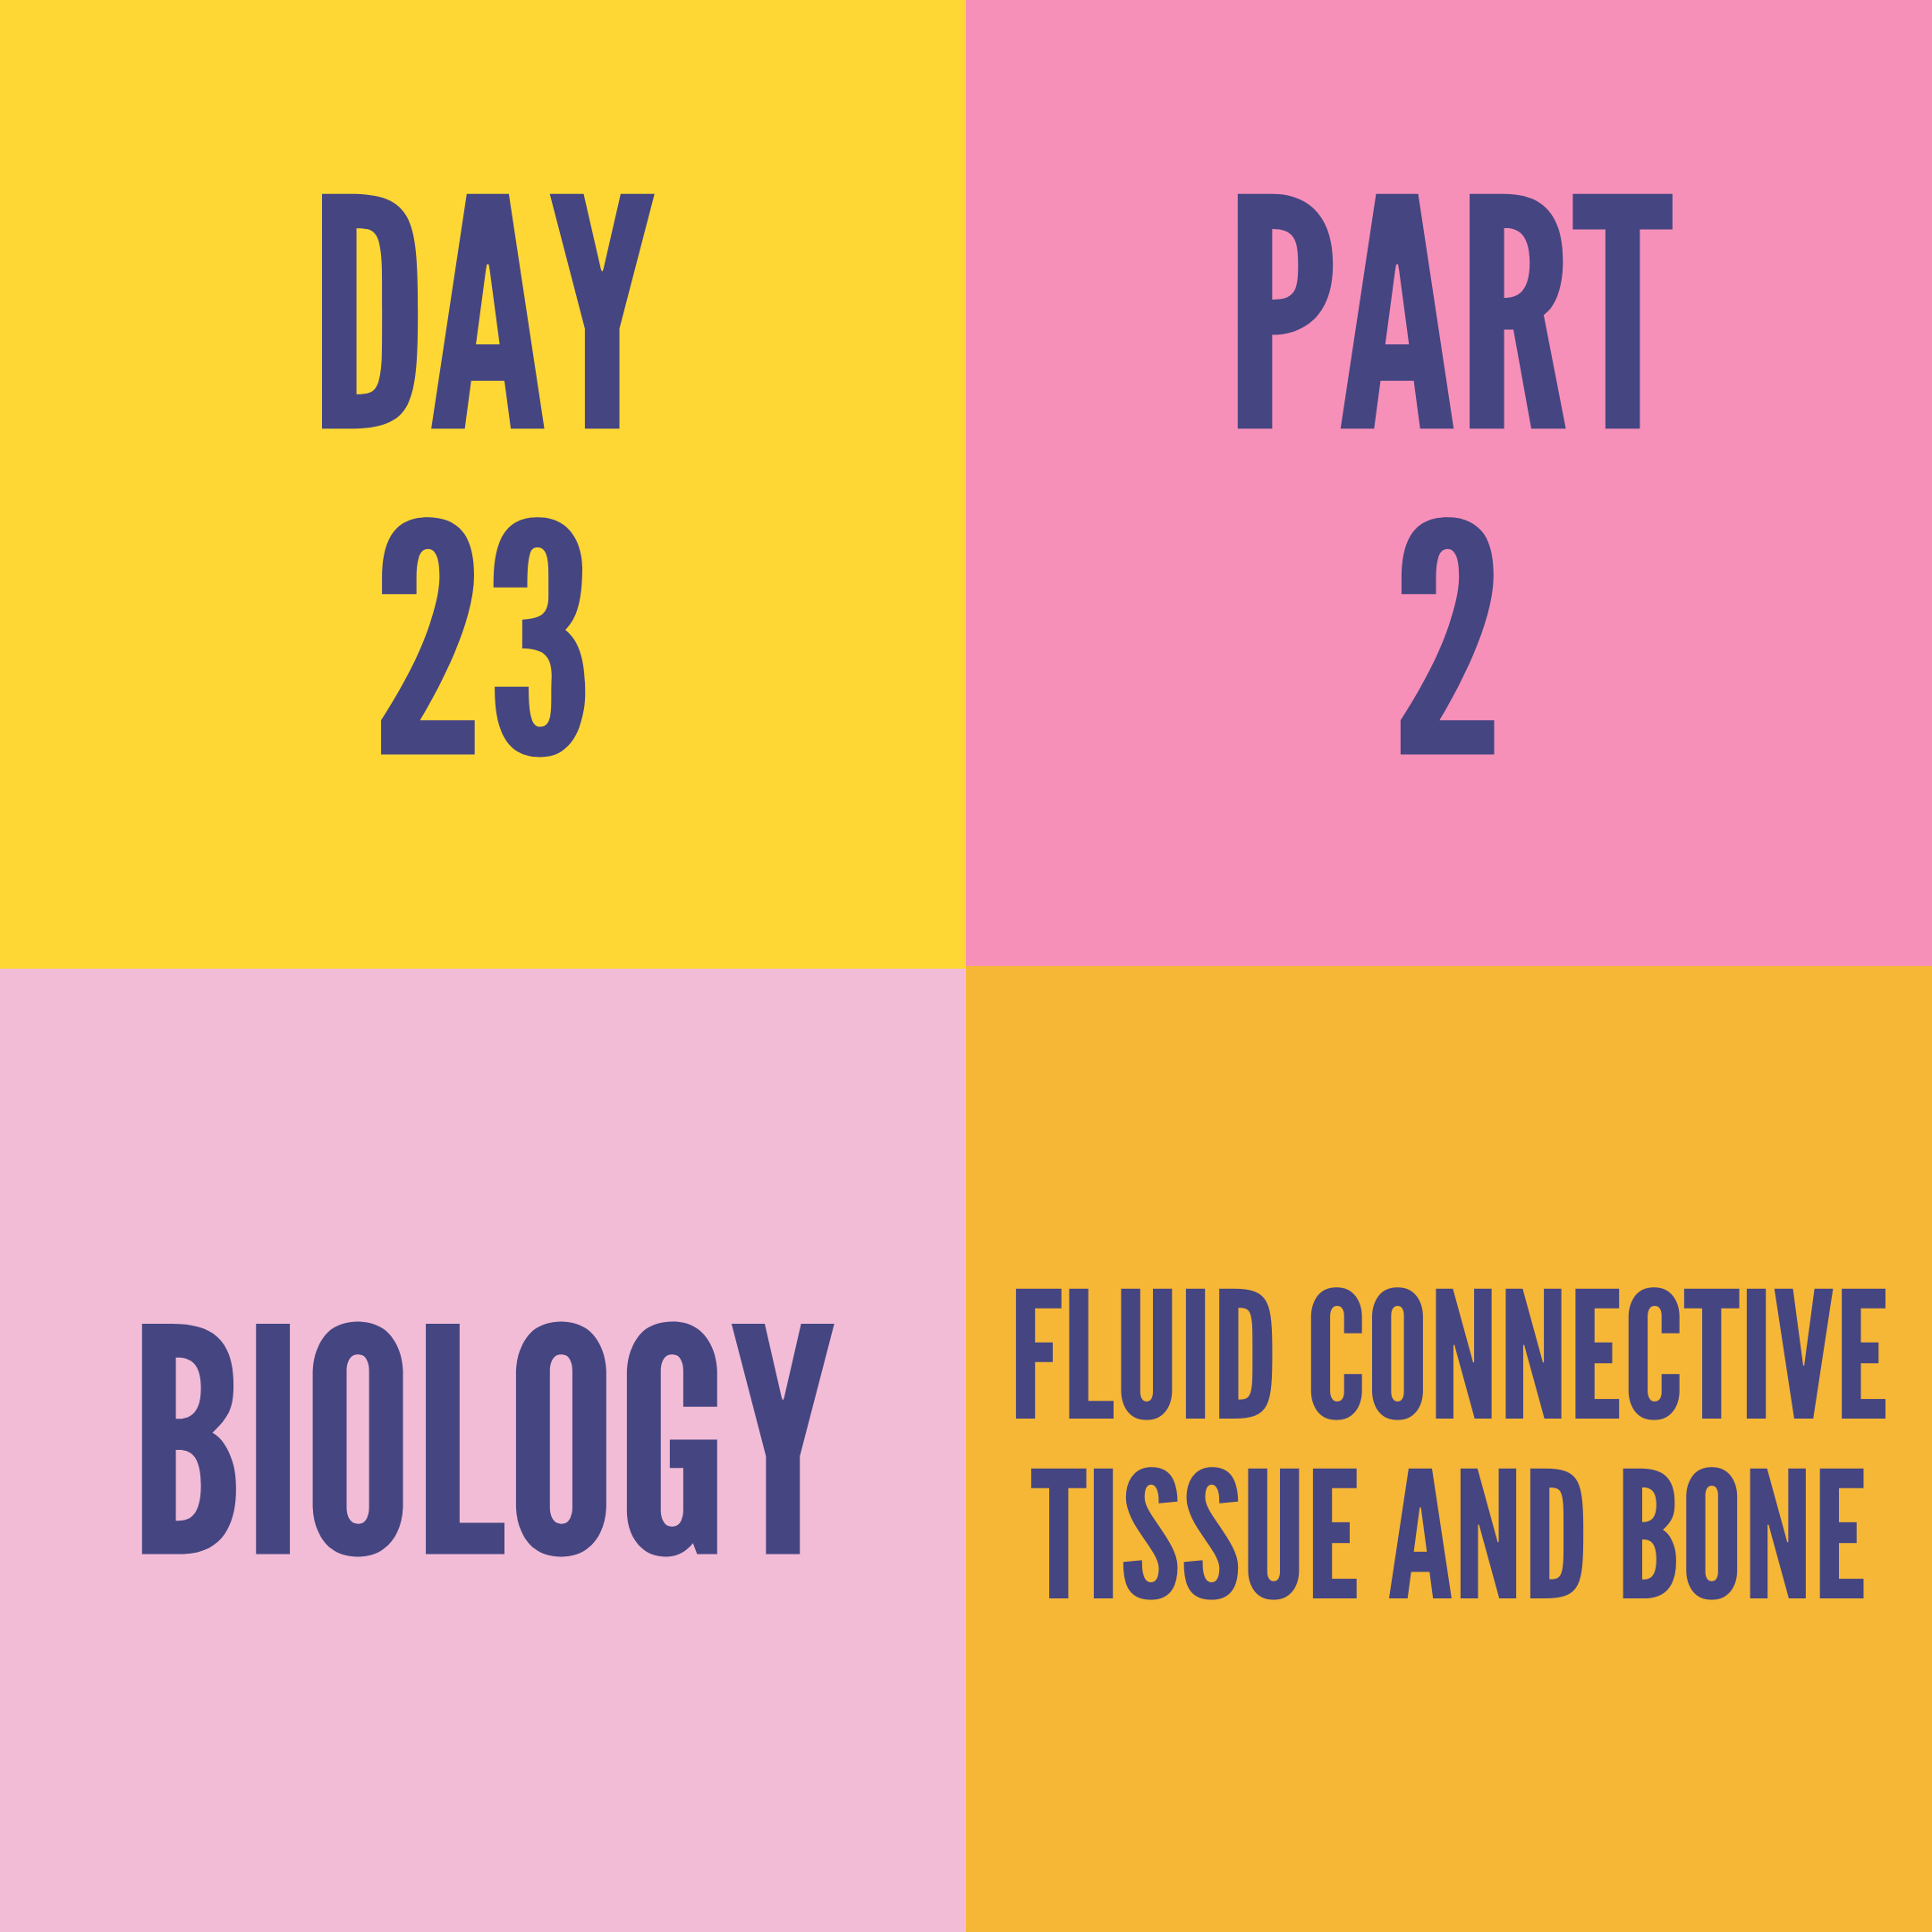 DAY-23 PART-2 FLUID CONNECTIVE TISSUE AND BONE